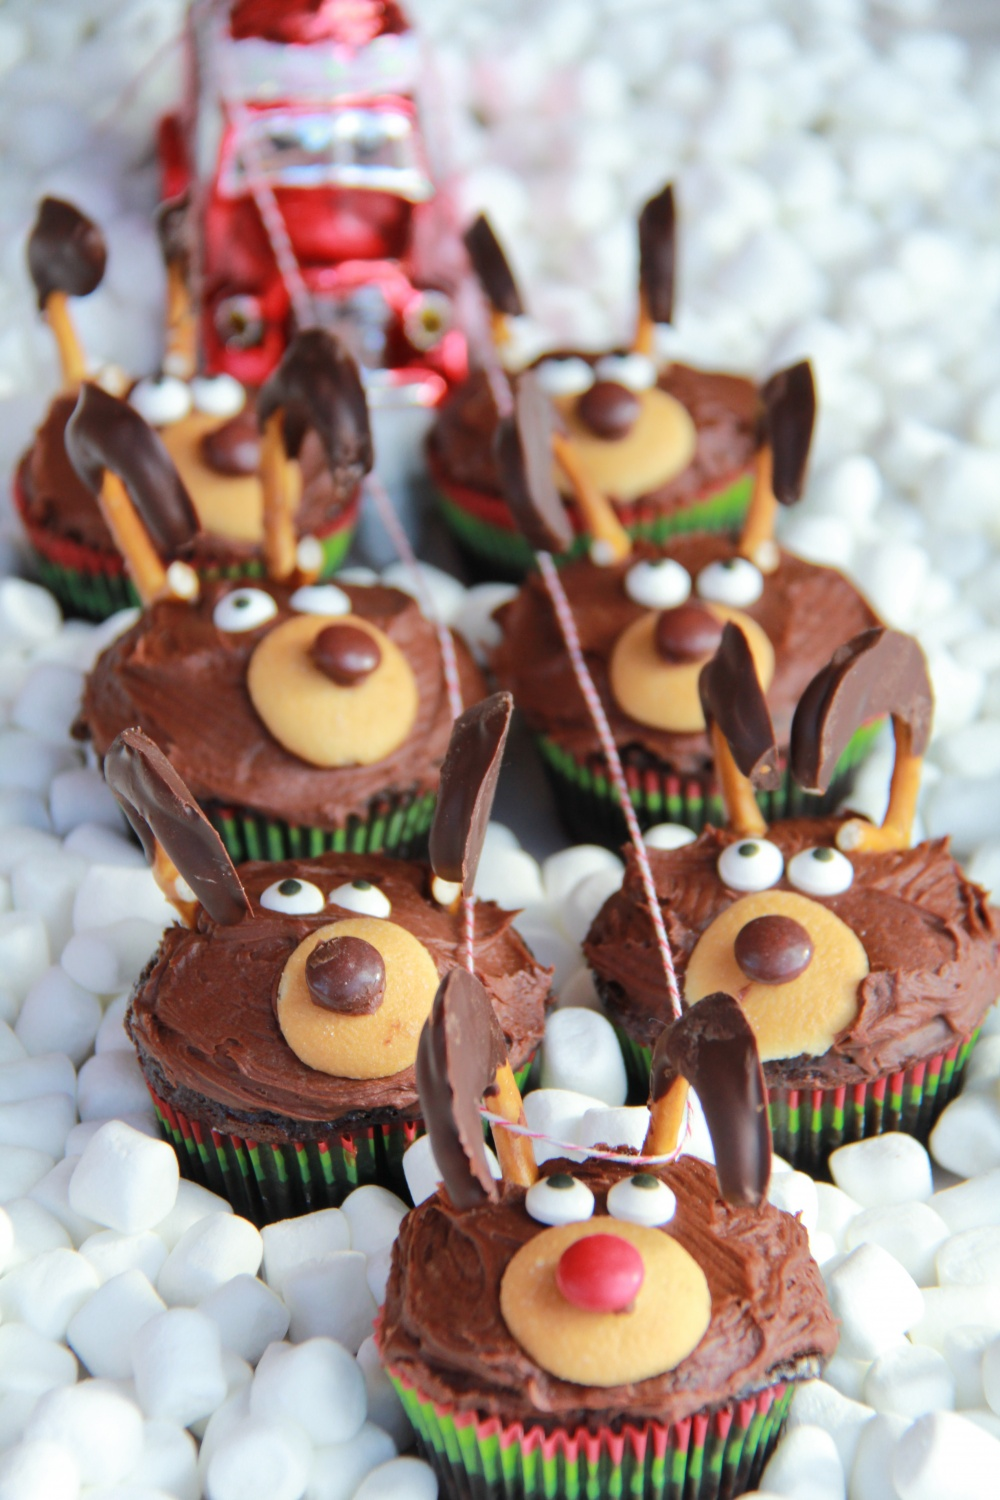 20 Adorable Cupcakes To Bake For Christmas Recipes For